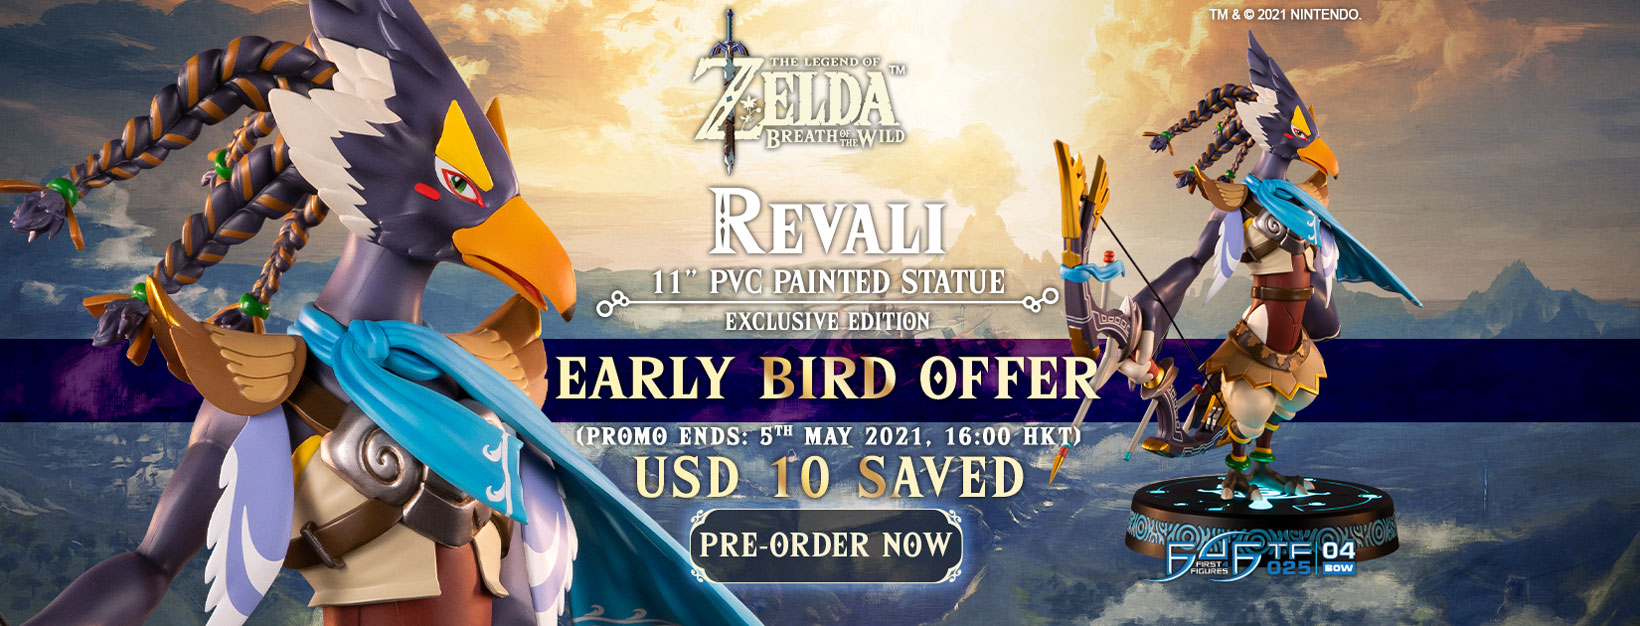 The Legend of Zelda™: Breath of the Wild – Revali PVC statue Early Bird Offer